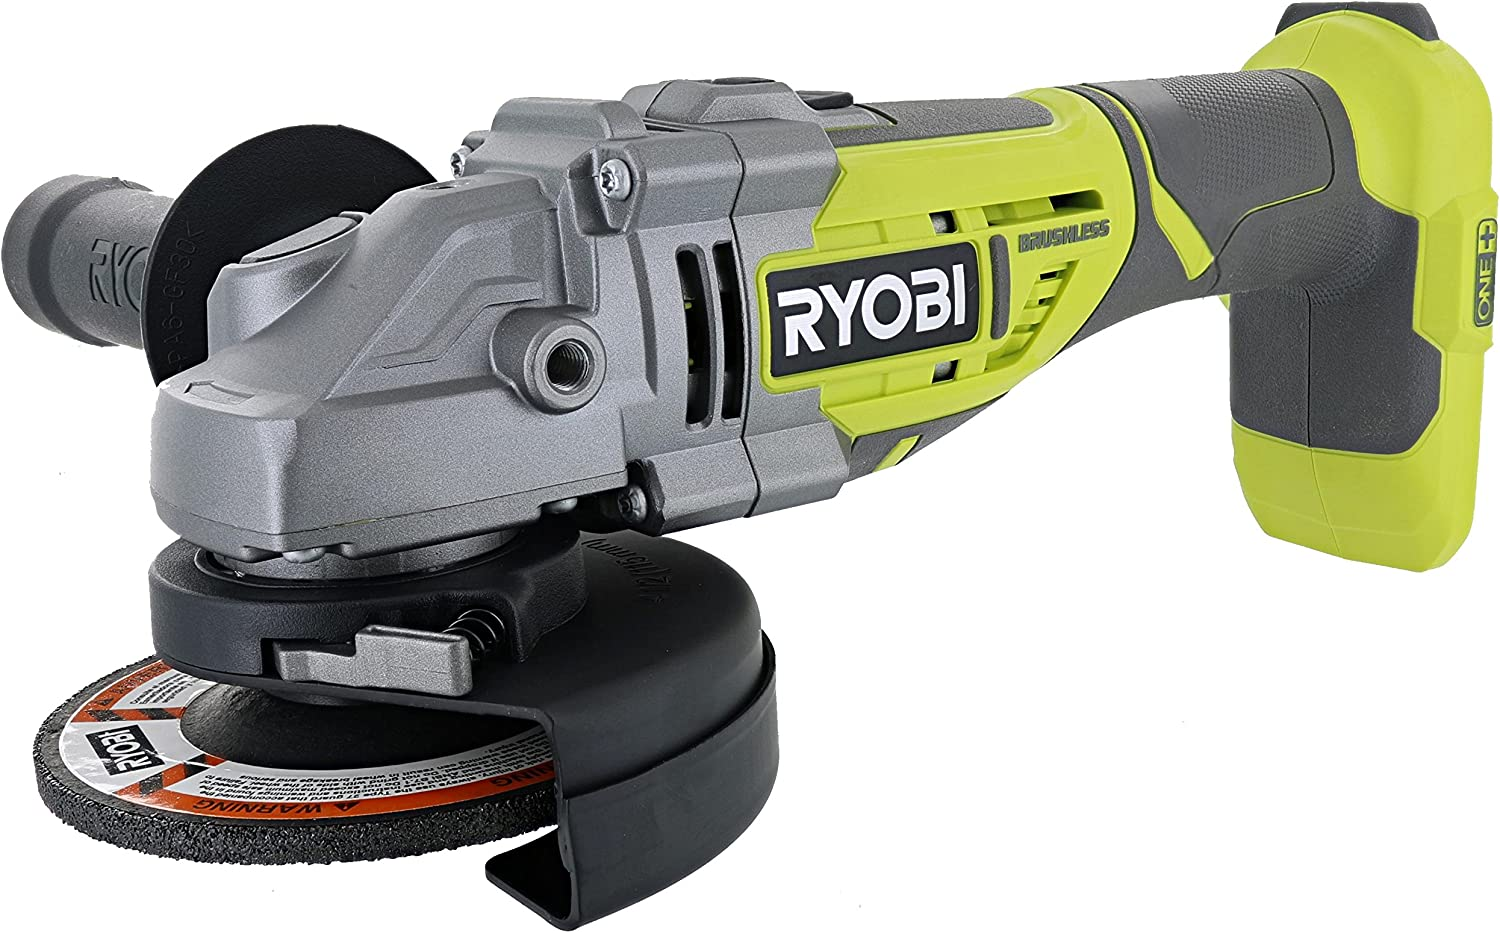 Ryobi P423 18V One+ Brushless 4-1/2&Quot; 10,400 Rpm Grinder And Metal Cutter W/ Adjustable 3-Position Side Handle And Onboard Spanner Wrench (Battery Not Included, Power Tool Only)